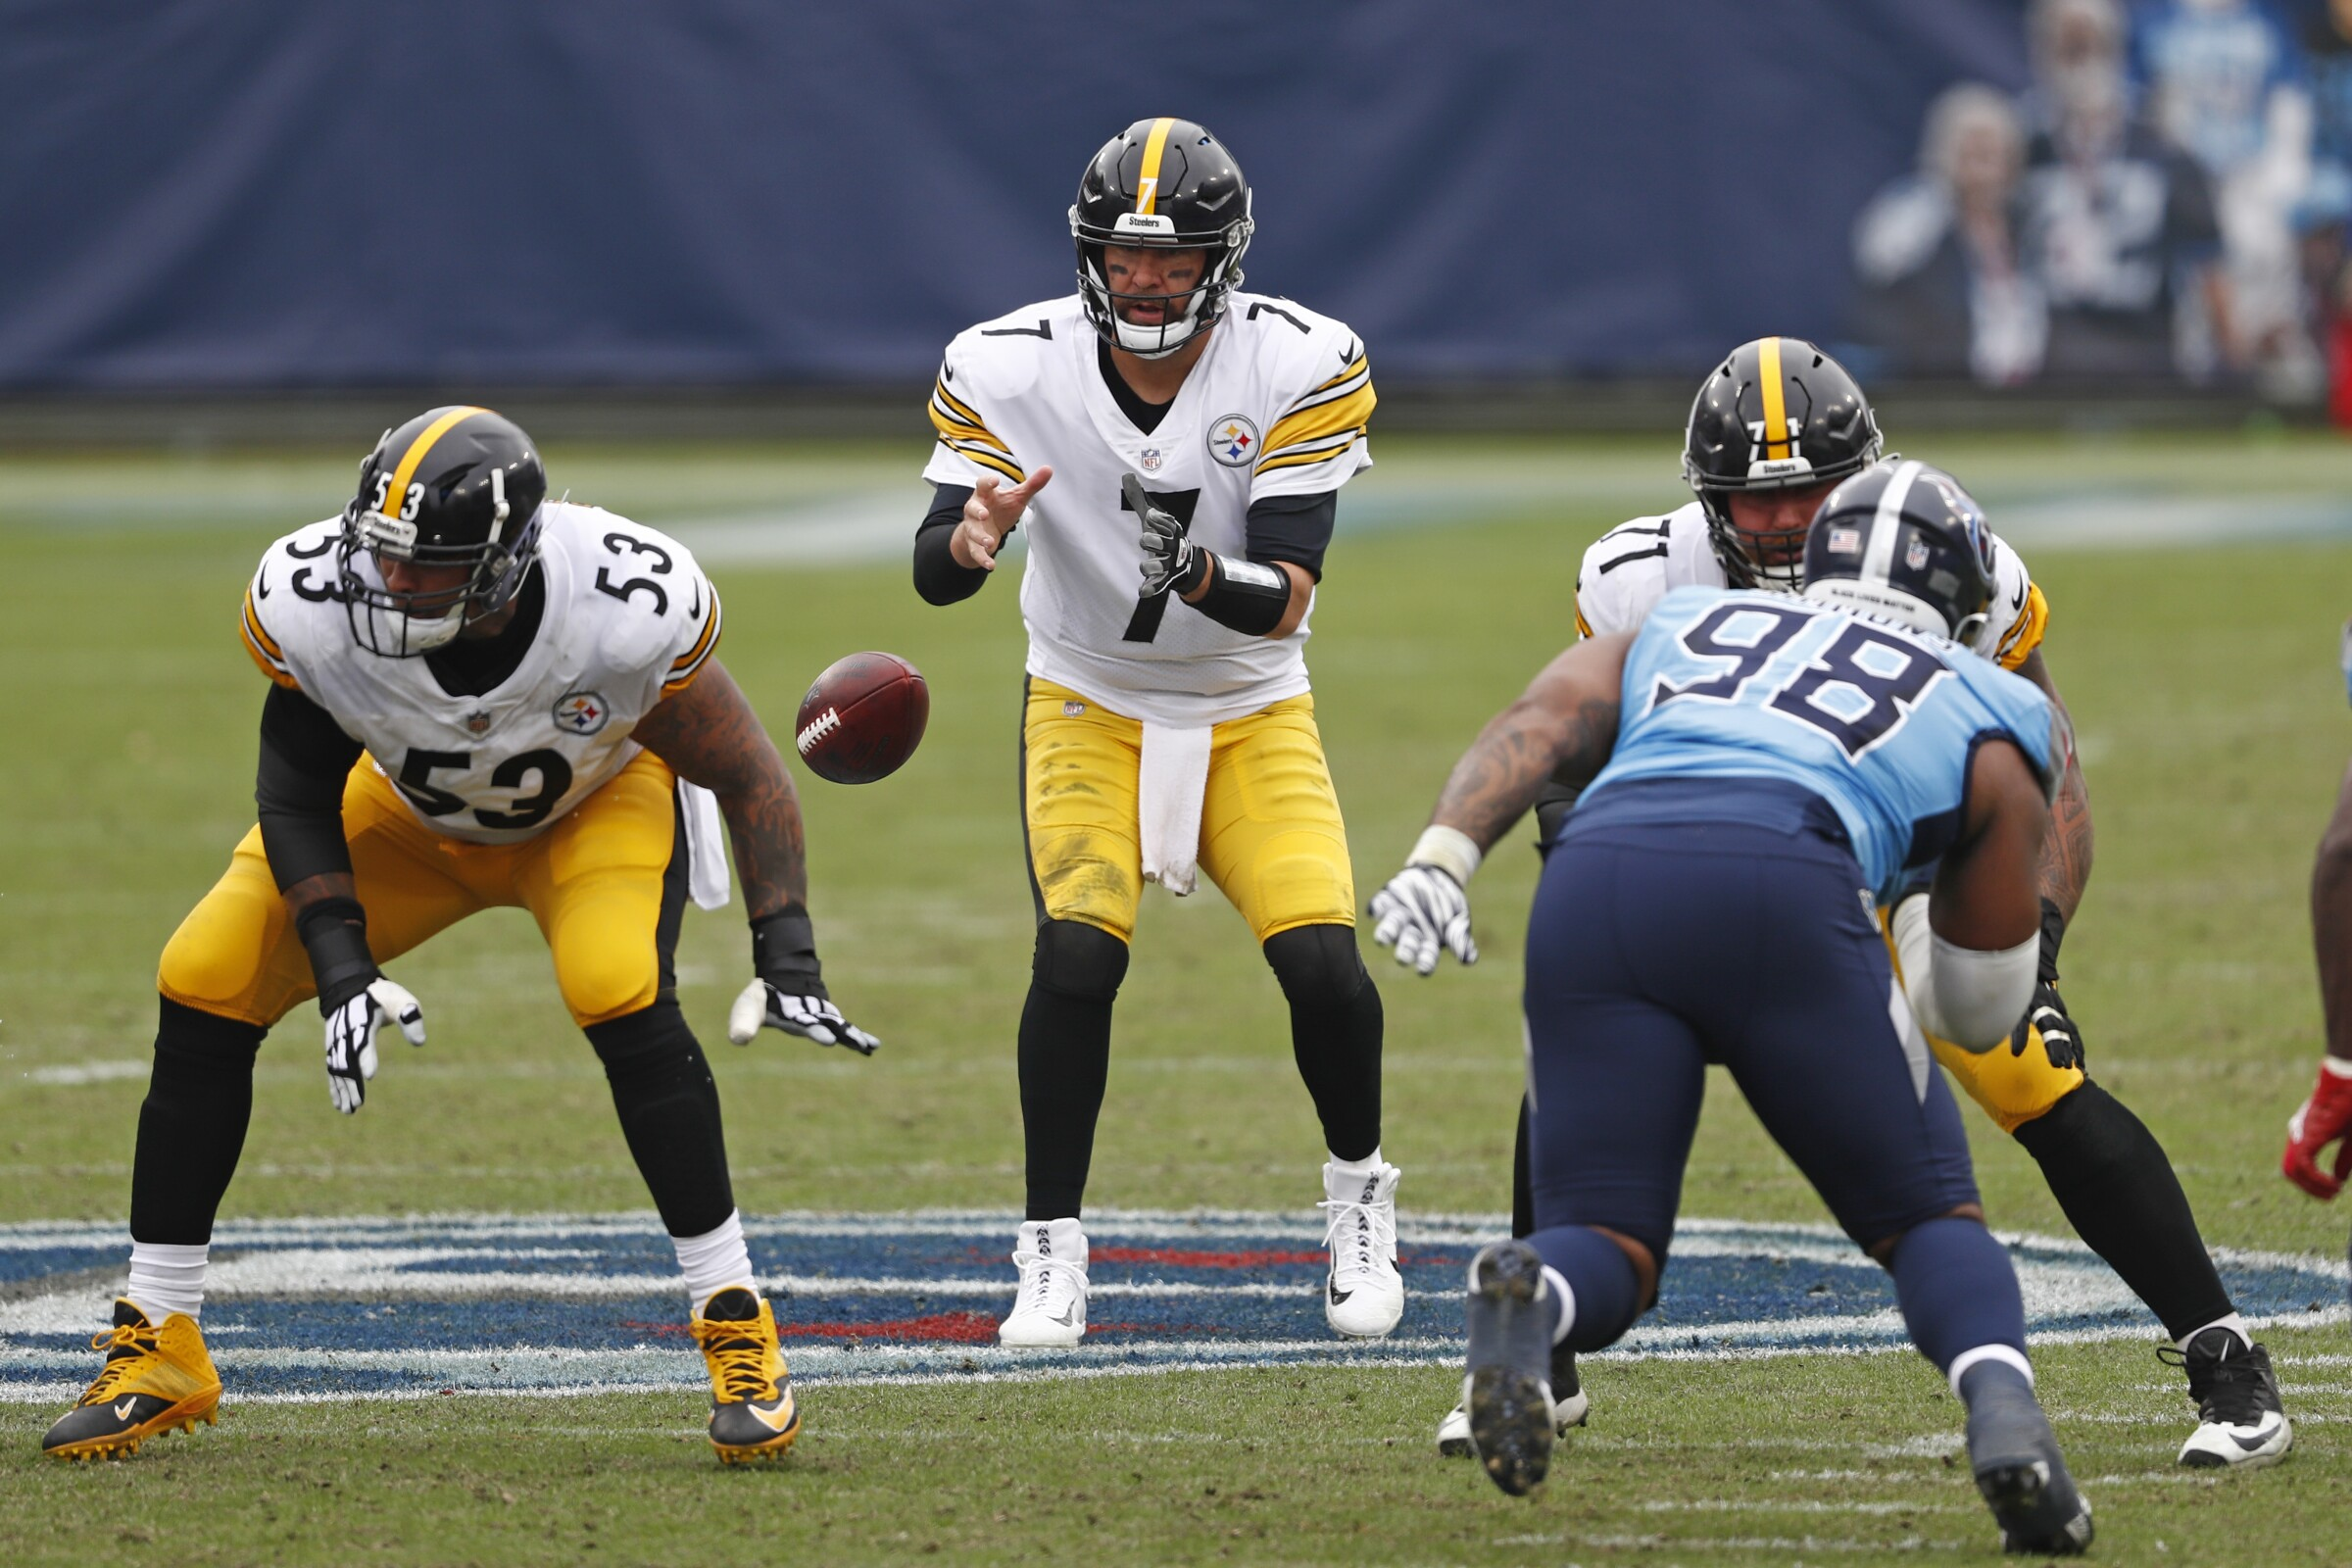 Pittsburgh Steelers quarterback Ben Roethlisberger (7) takes a snap against the Tennessee Titans.